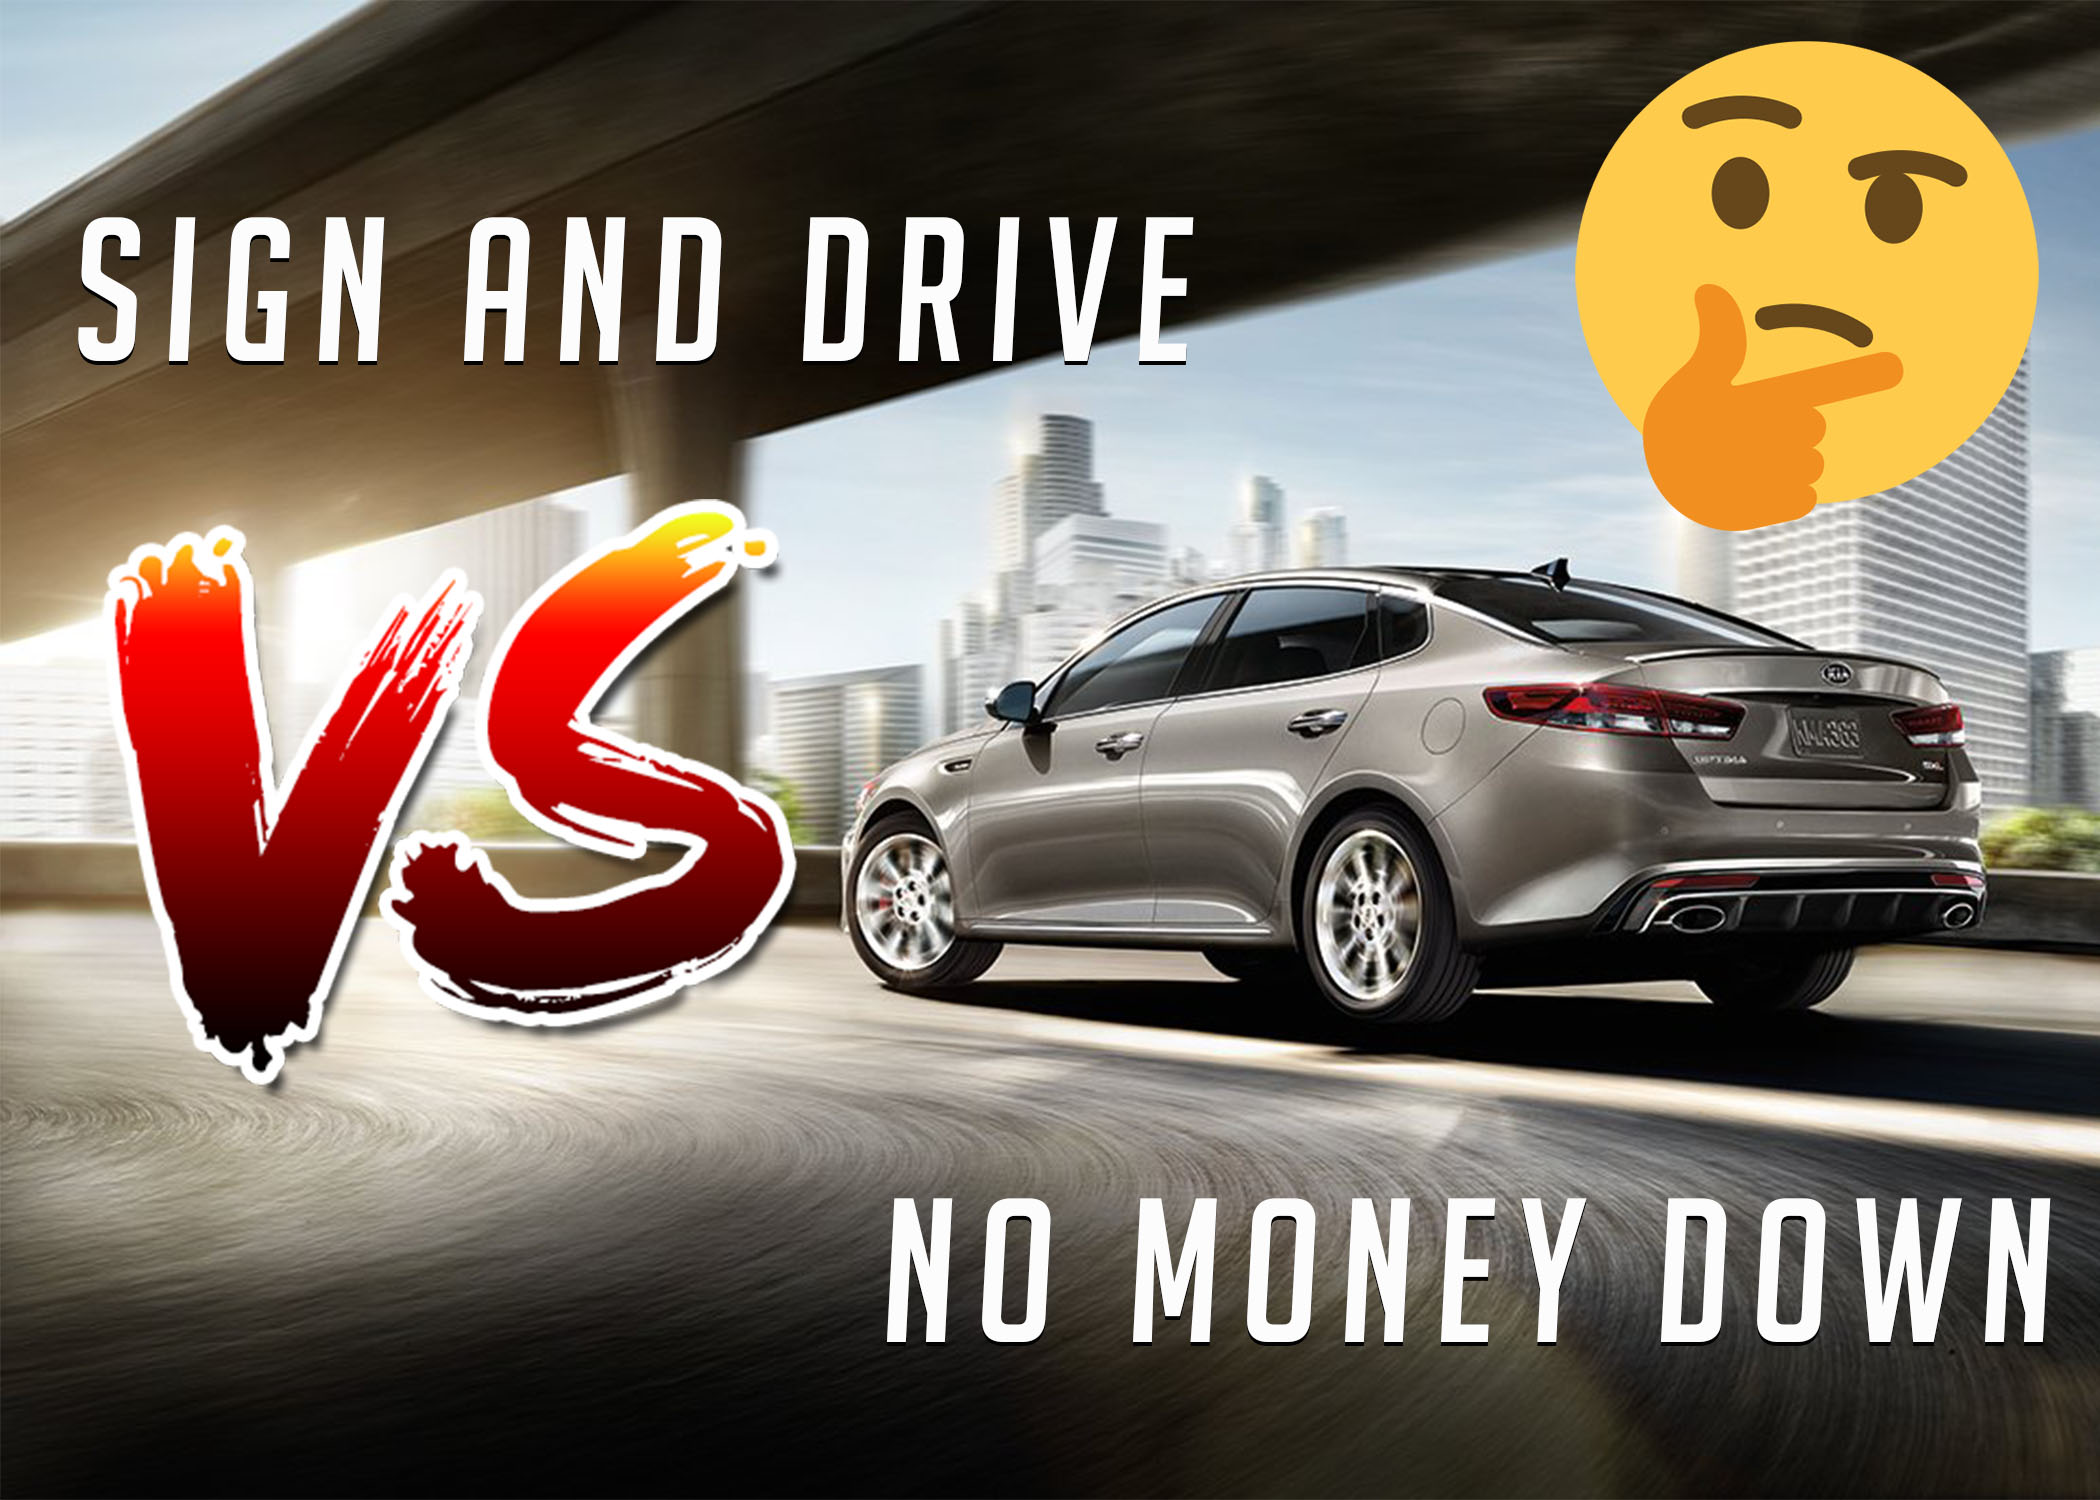 Cheapest Car To Lease With No Money Down >> No Money Down Vs Sign And Drive Lease Deals What S The Difference